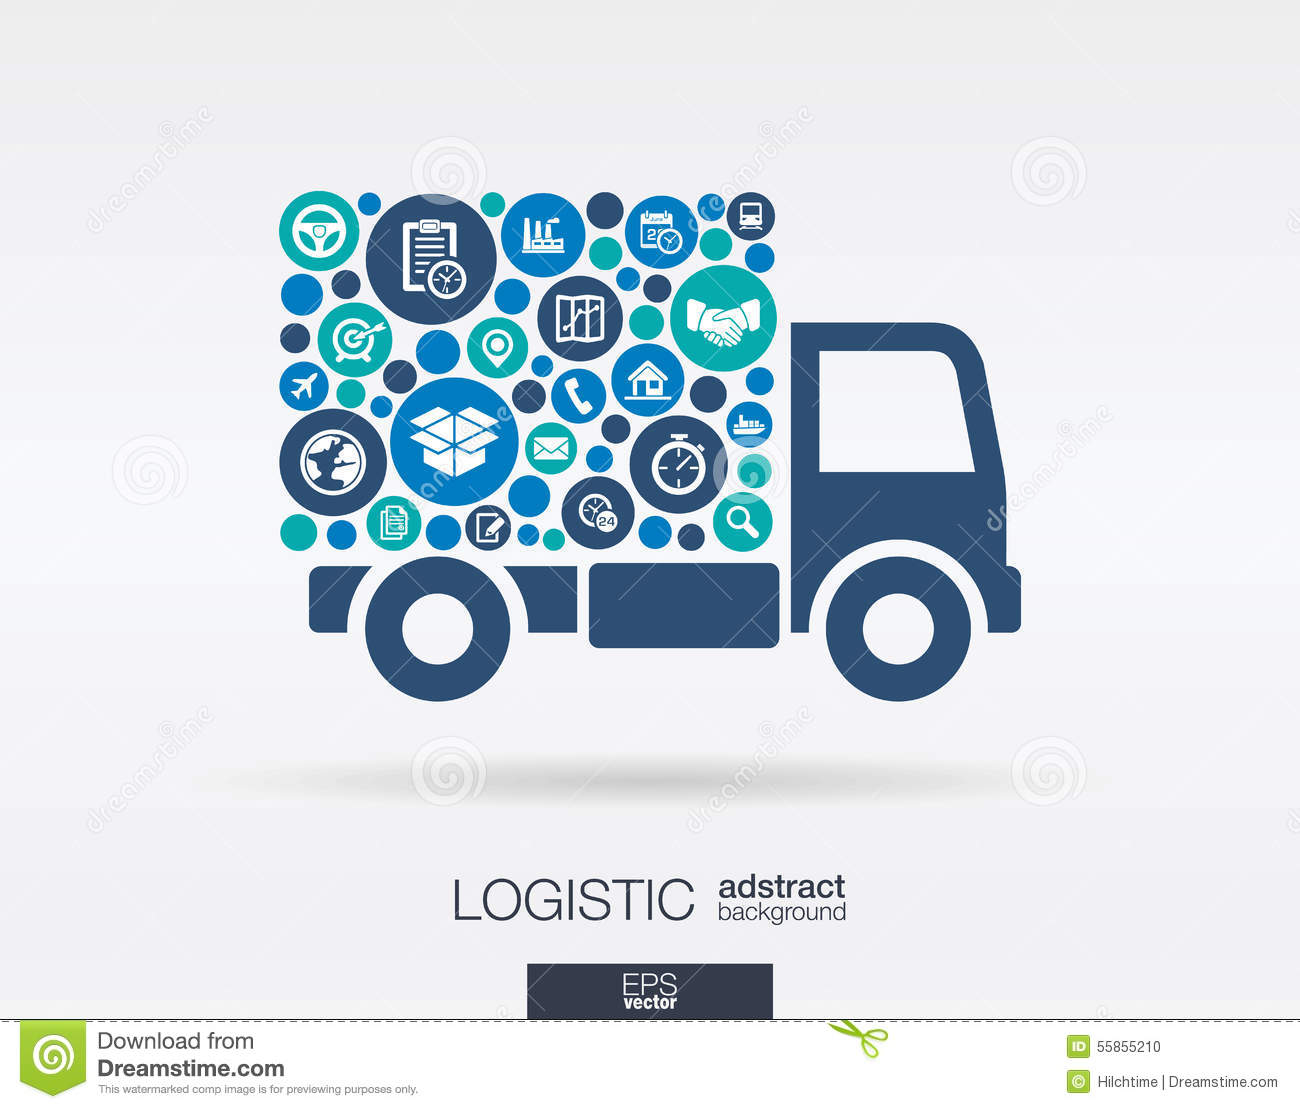 Color Circles, Flat Icons In A Truck Shape: Distribution